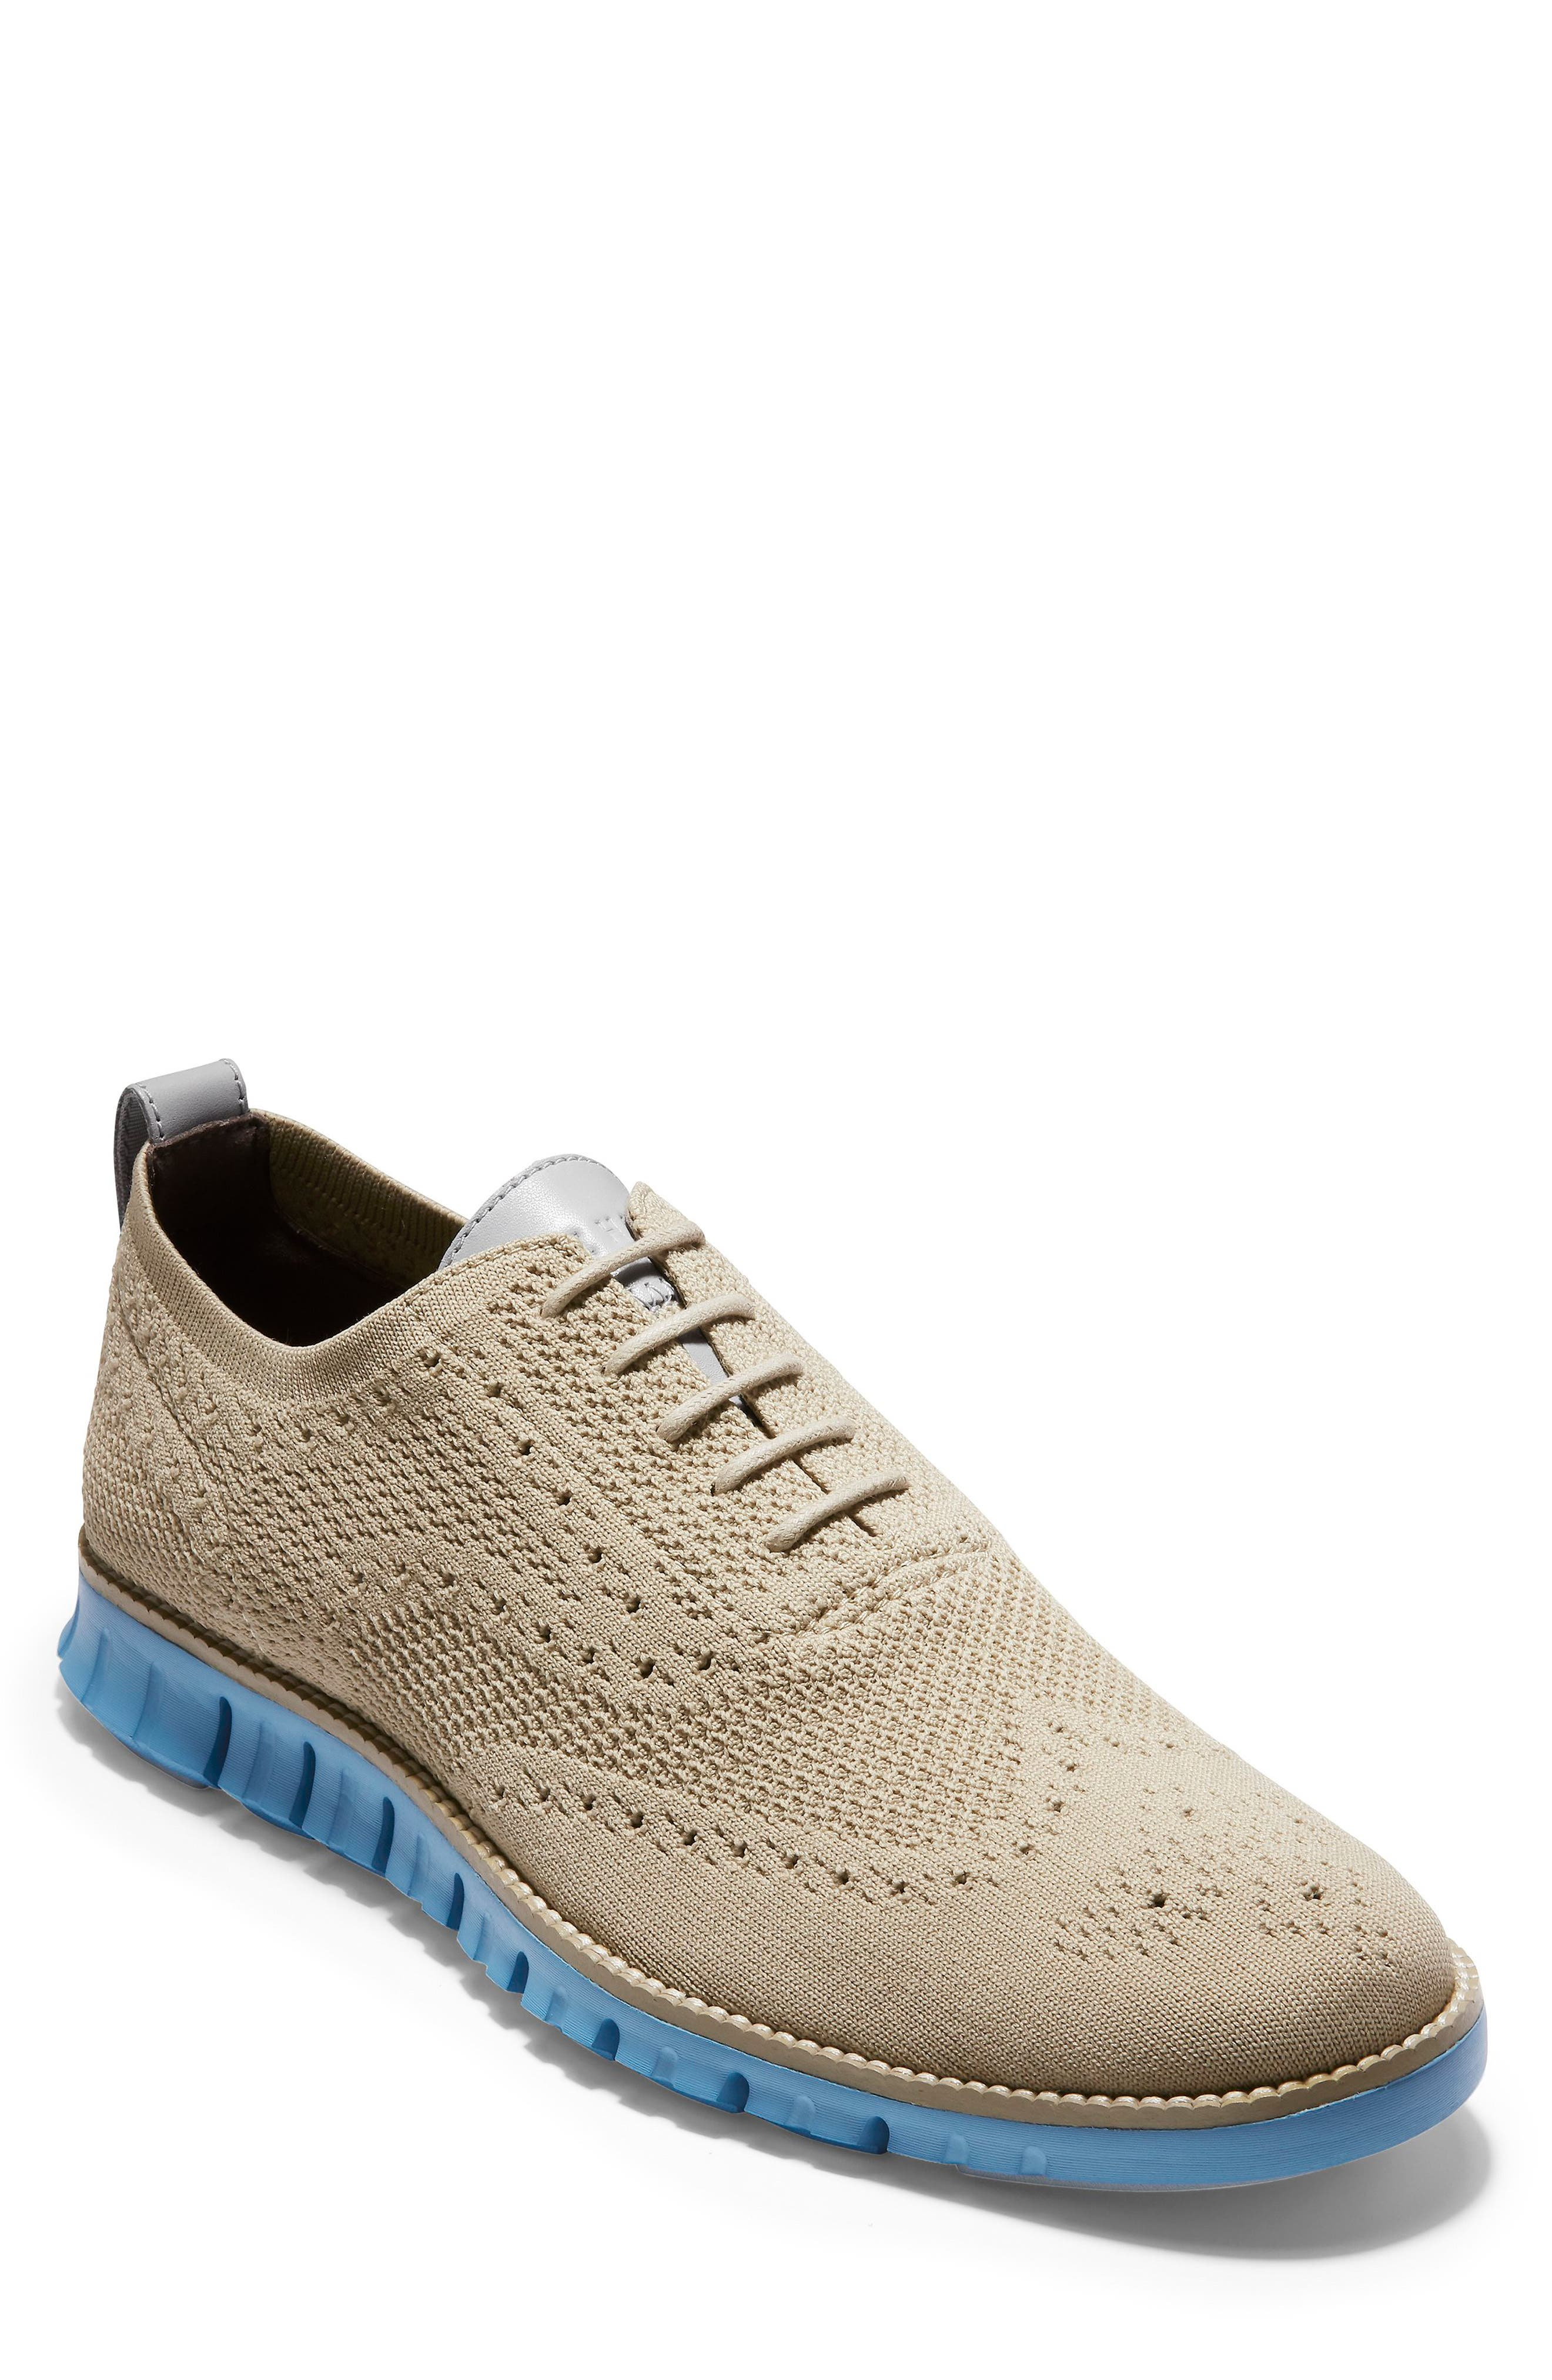 ZeroGrand Stitch-lite Wingtip Oxford, Main, color, HAWTHORN/ PACIFIC